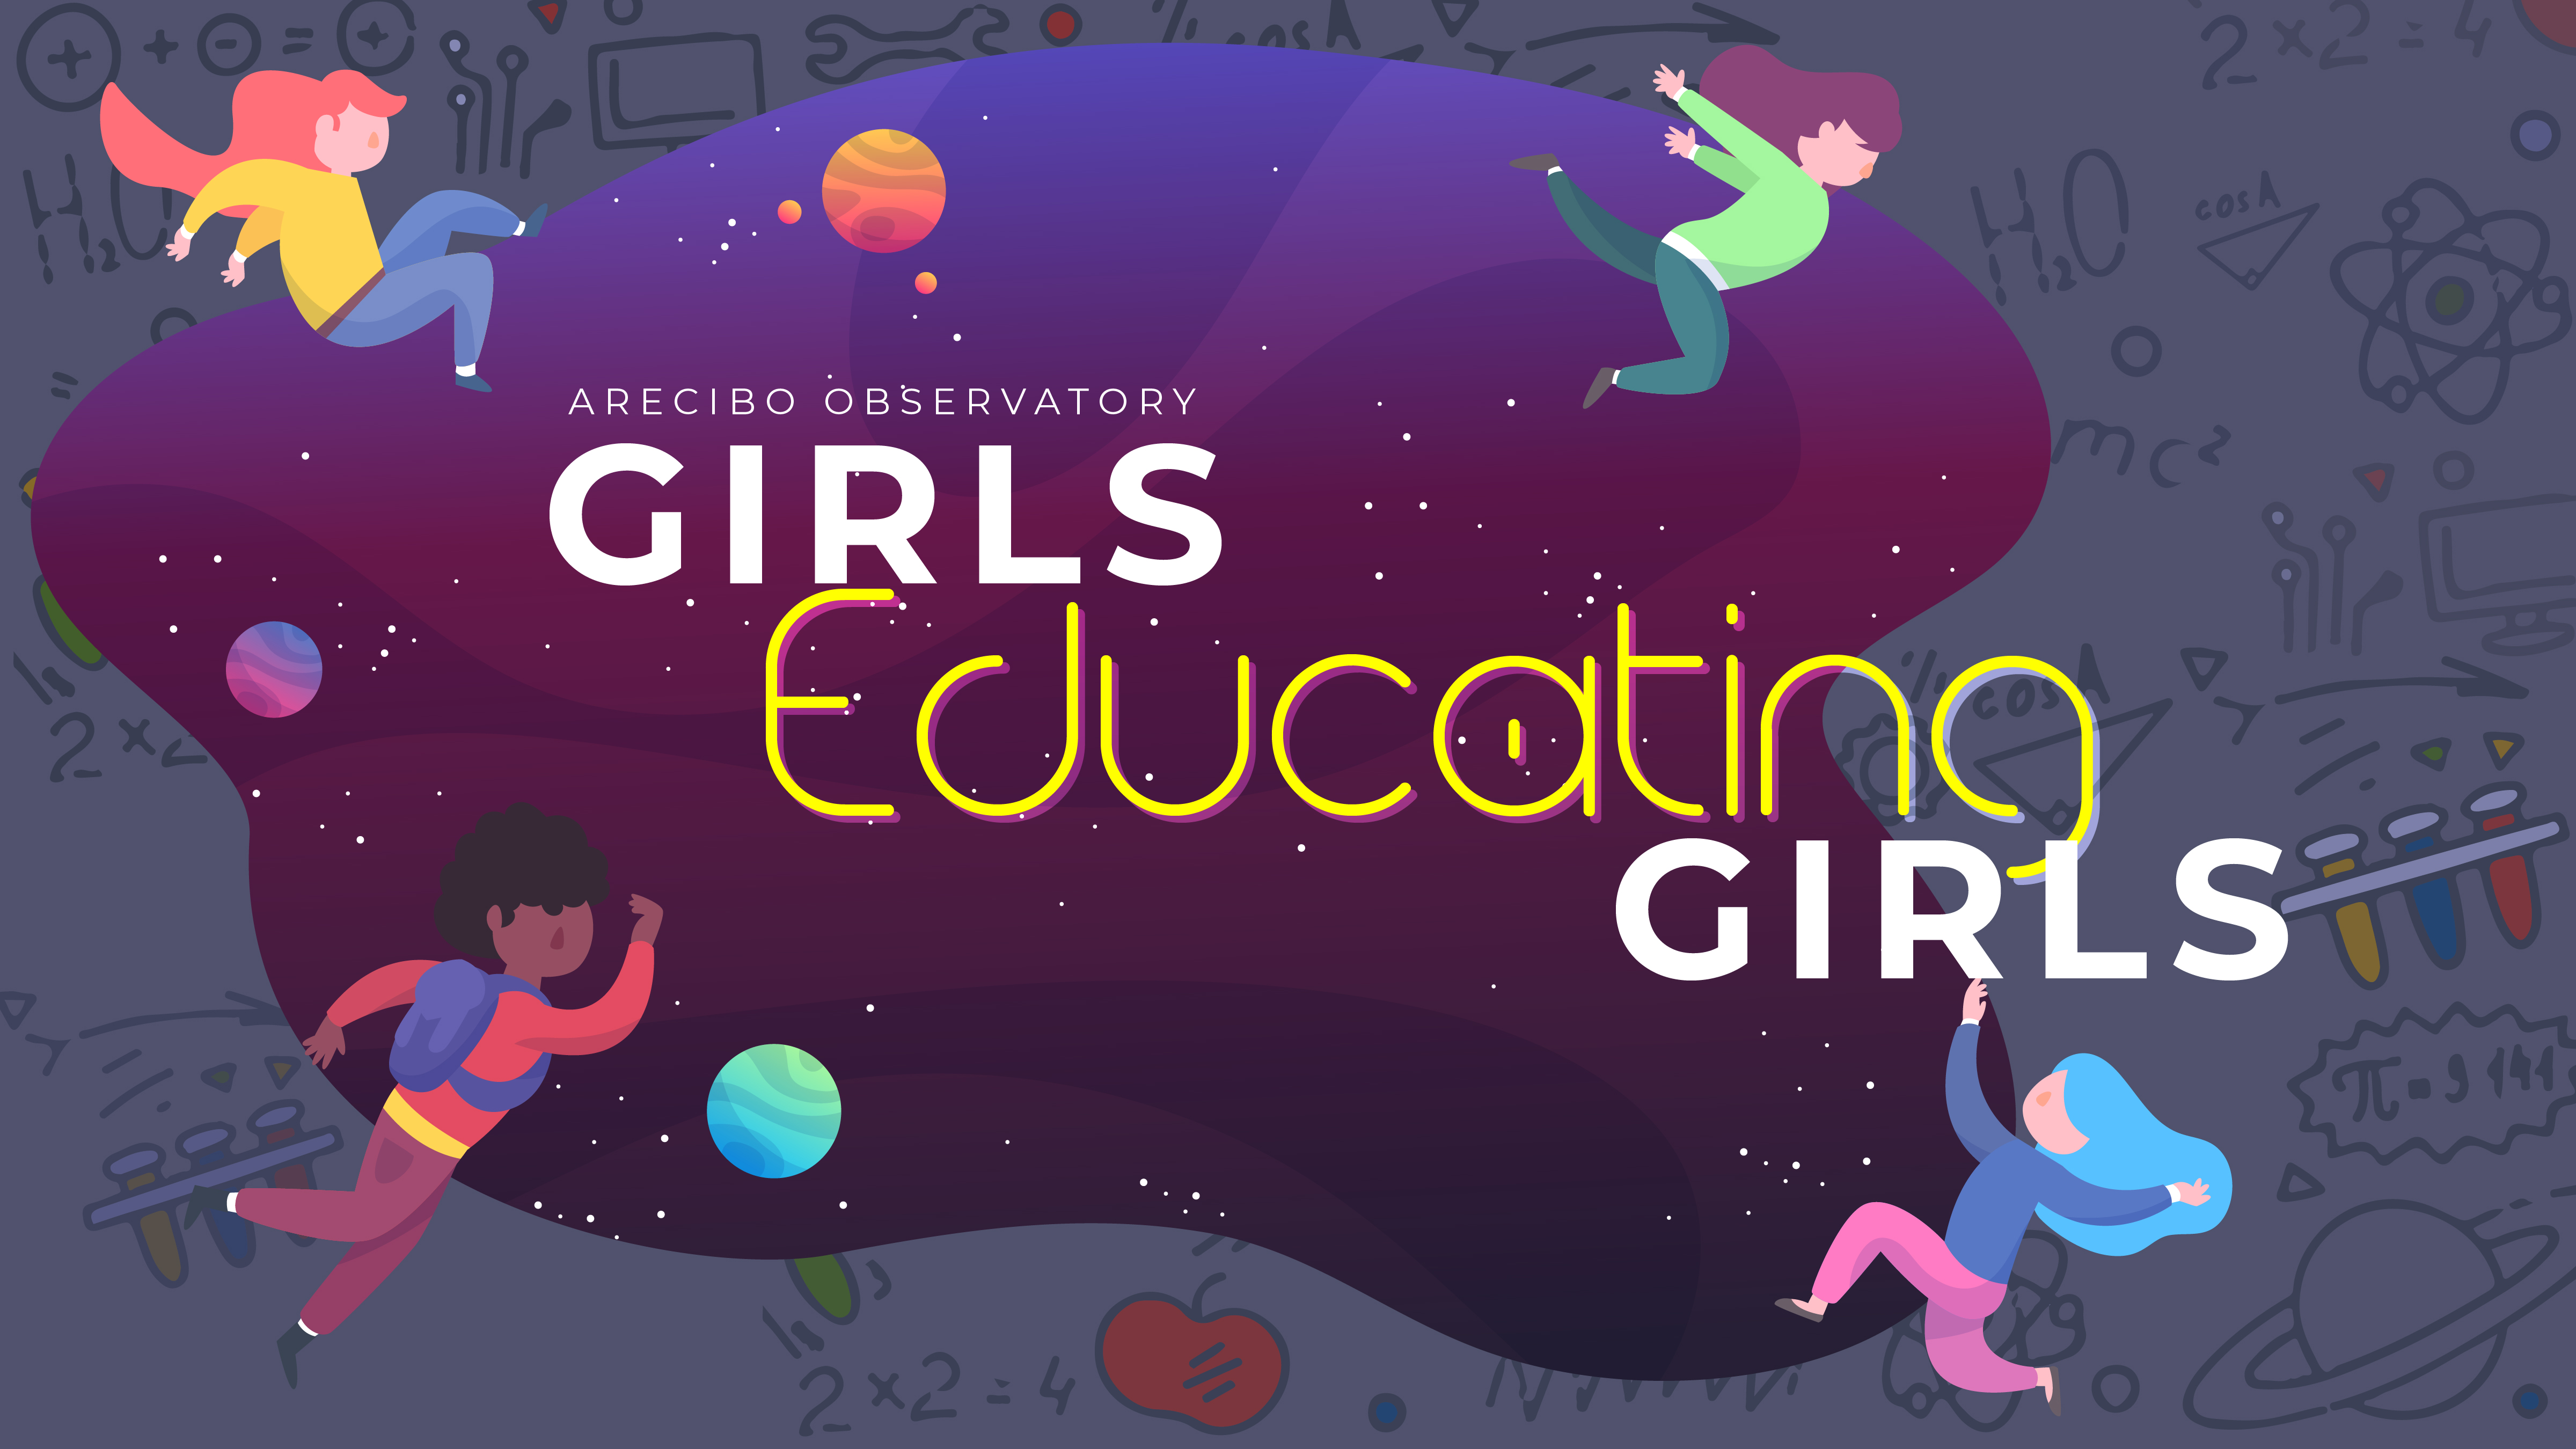 Girls Educating Girls